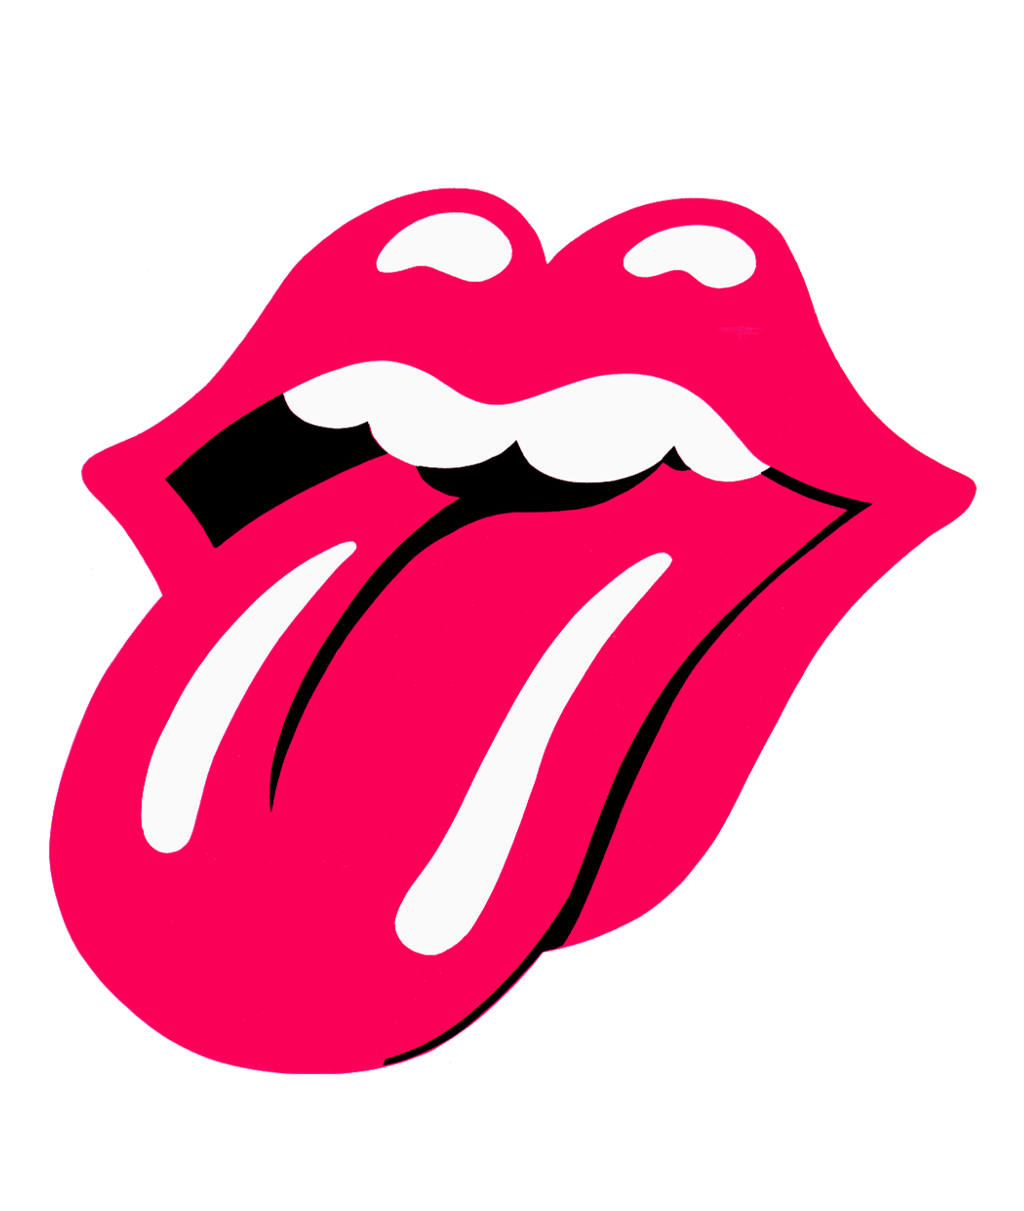 rolling stones lip png logo #3425